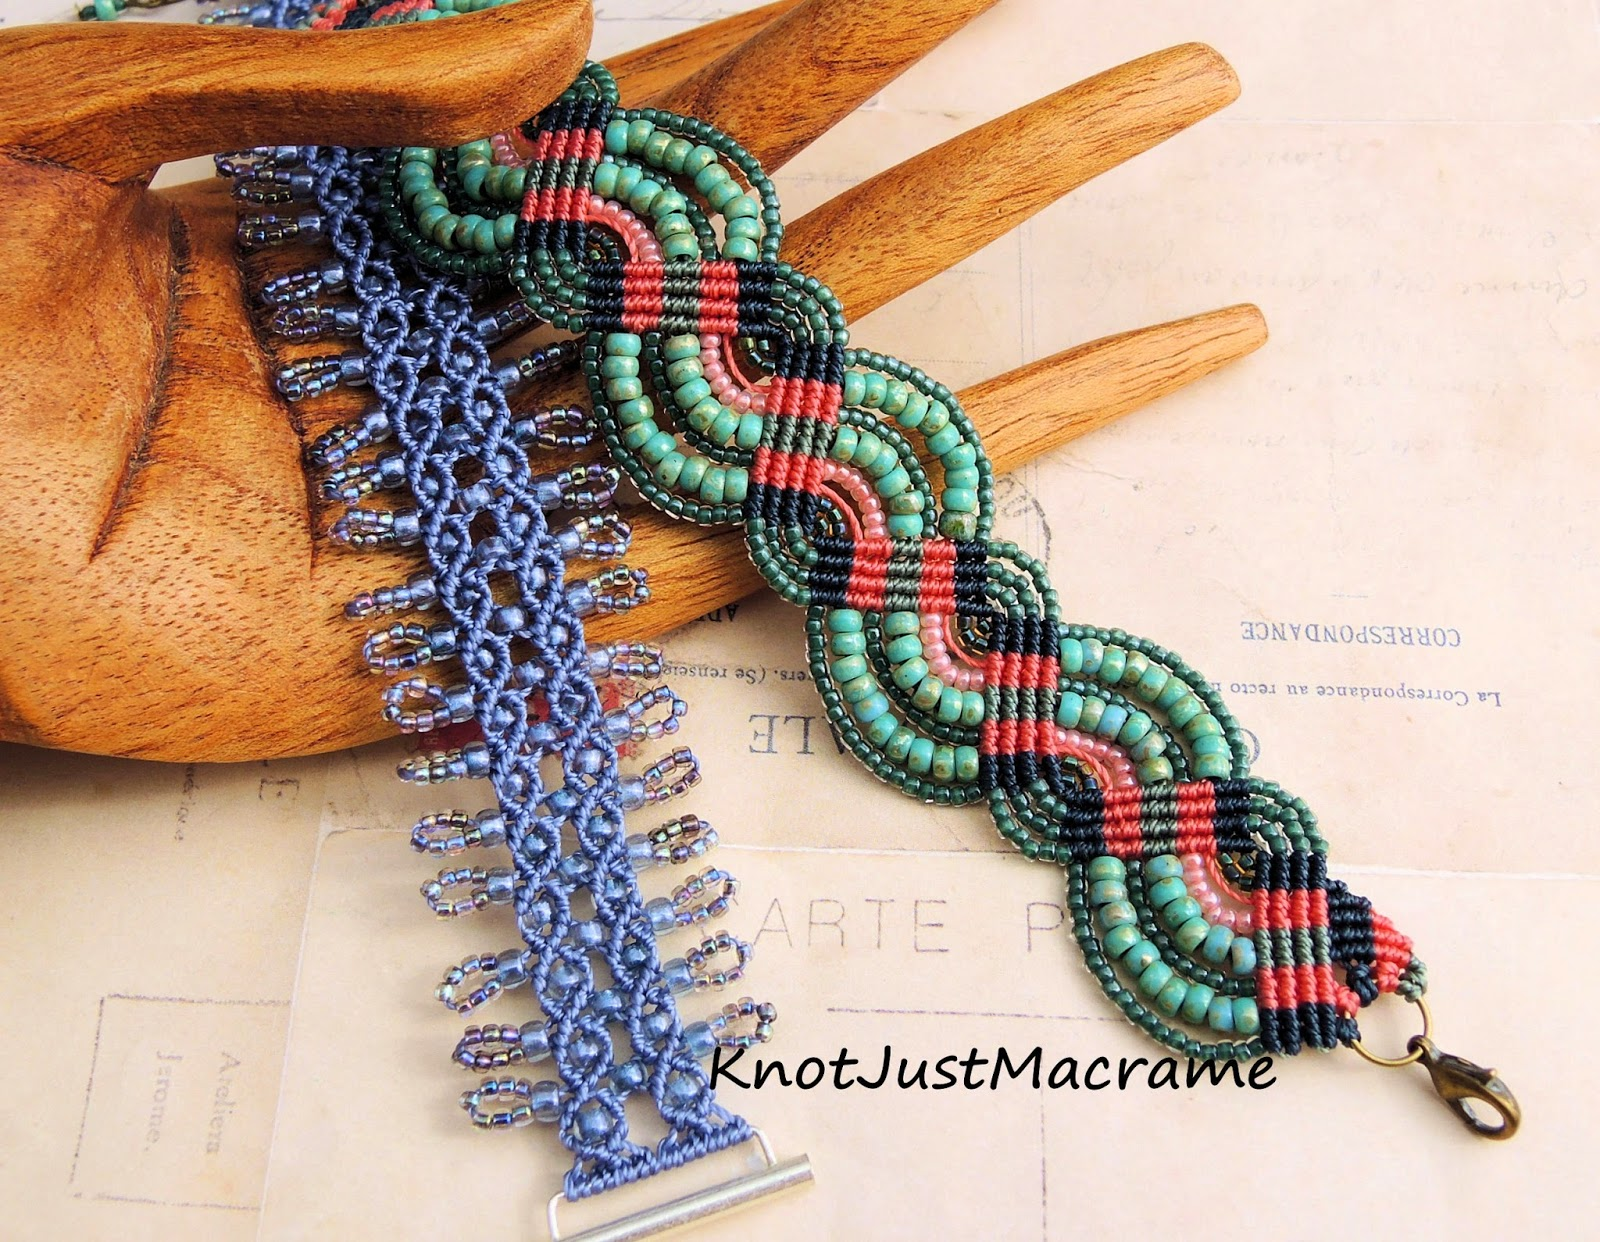 Two micro macrame bracelets from Knot Just Macrame